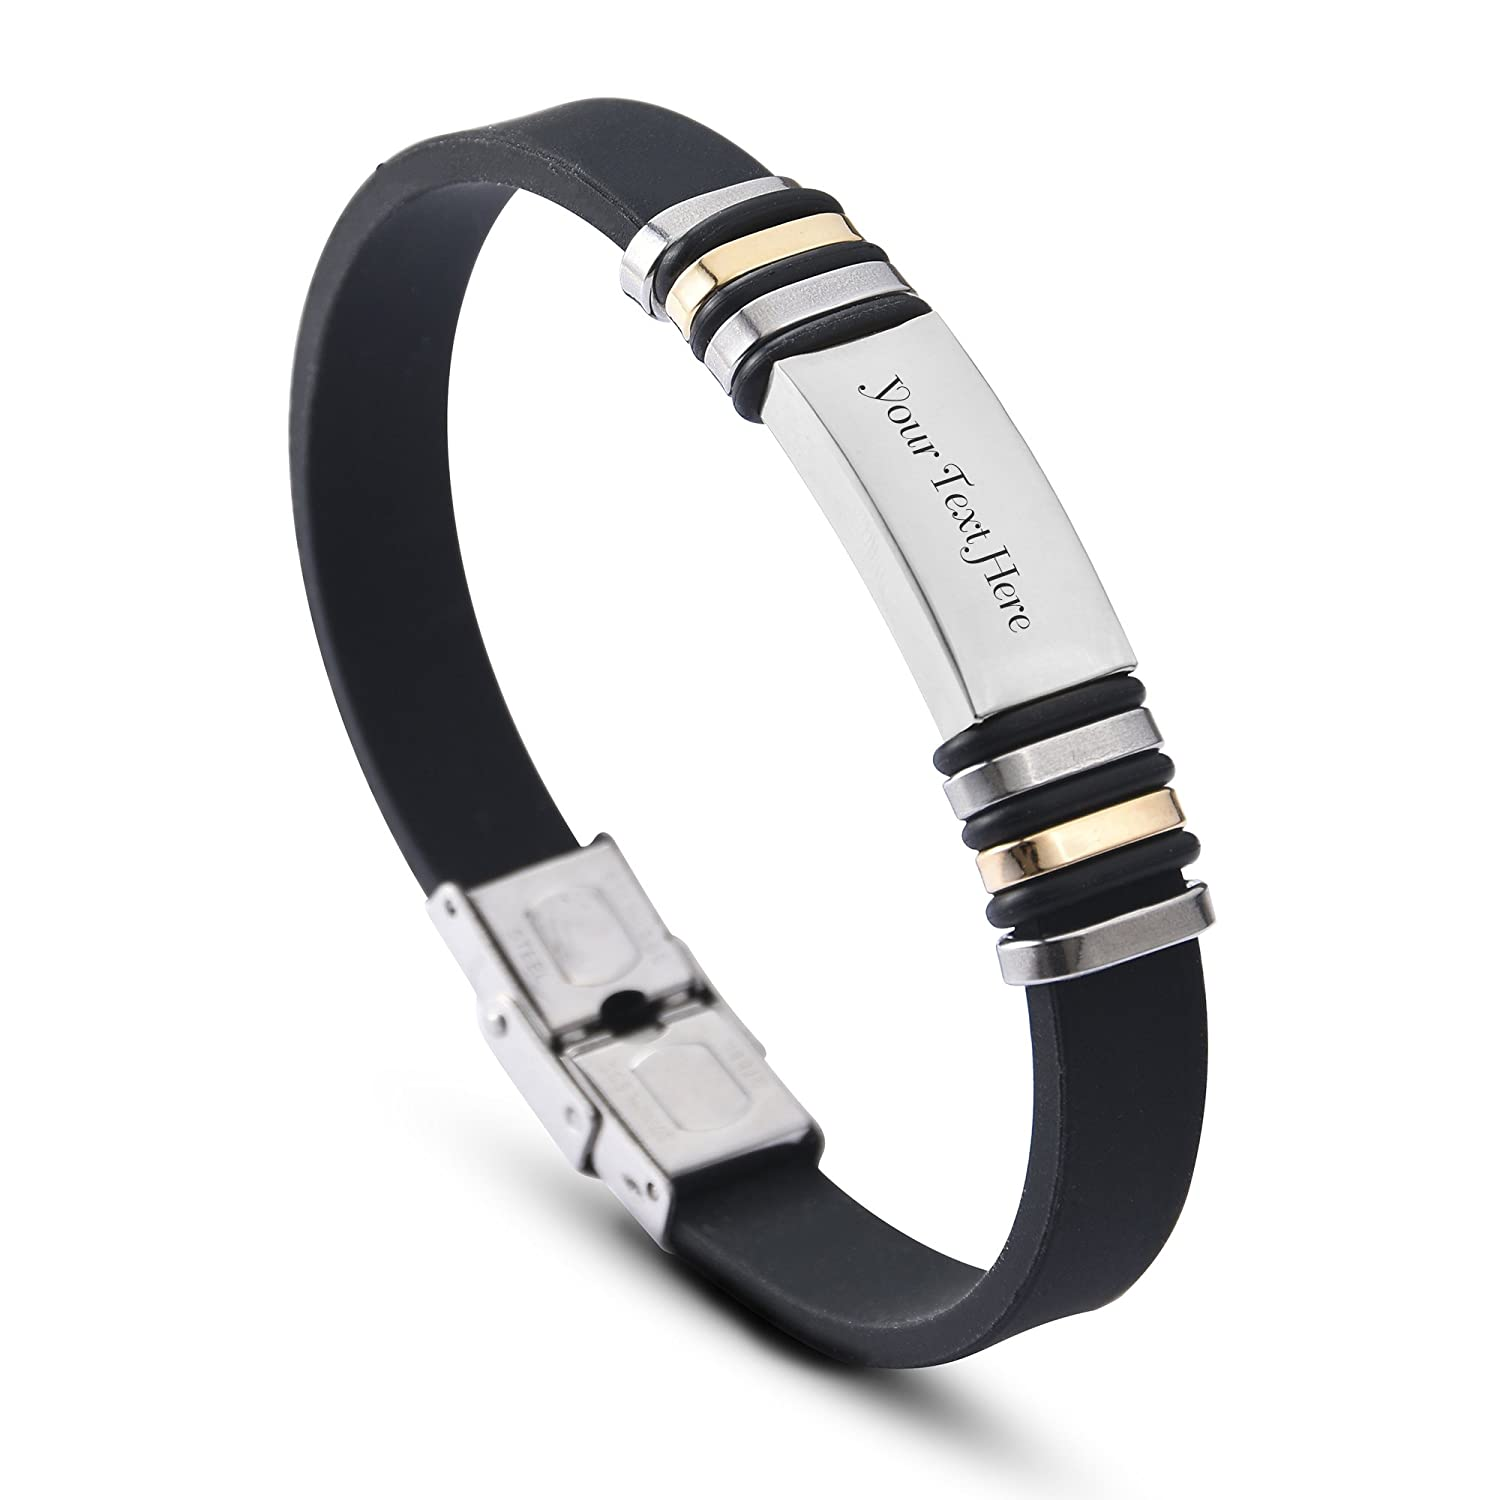 0a1b9ef834143 Amazon.com  Custom Engraved Stainless Steel Name ID Plate Rubber Bracelet  Wristband - 3 Colors to Choose (Black+Silver)  Jewelry